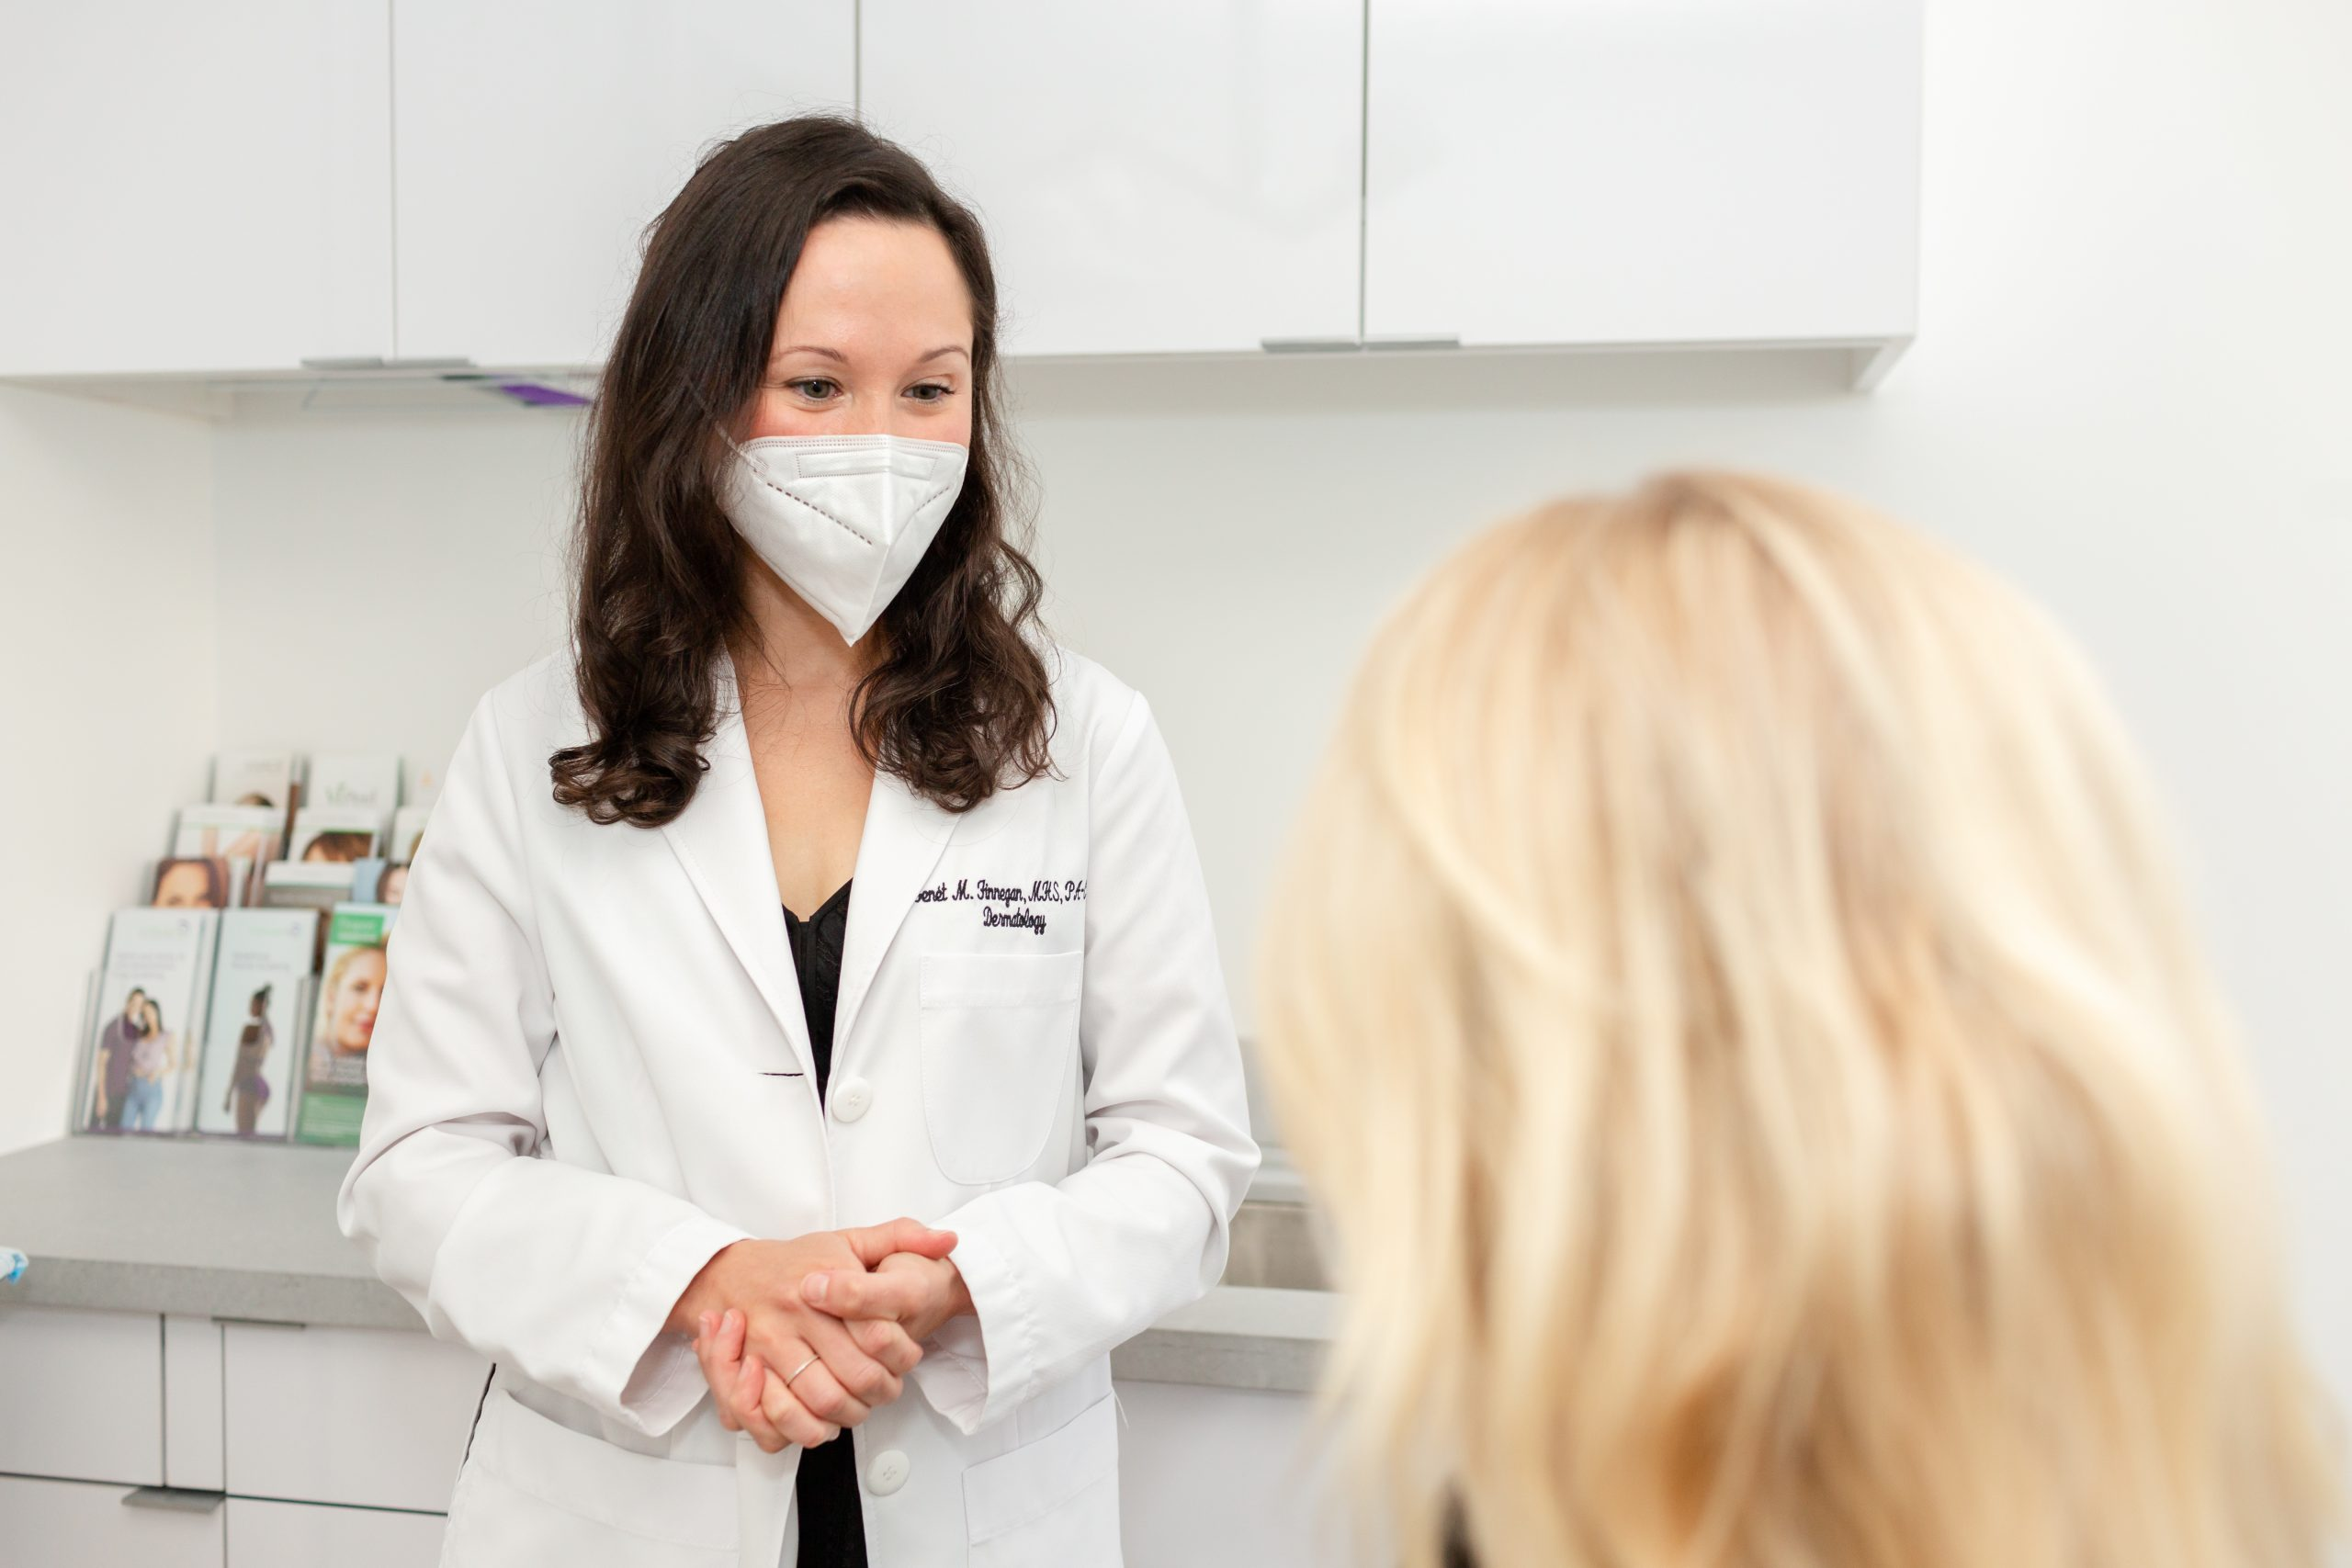 Sun damage consultation with patient in New York City